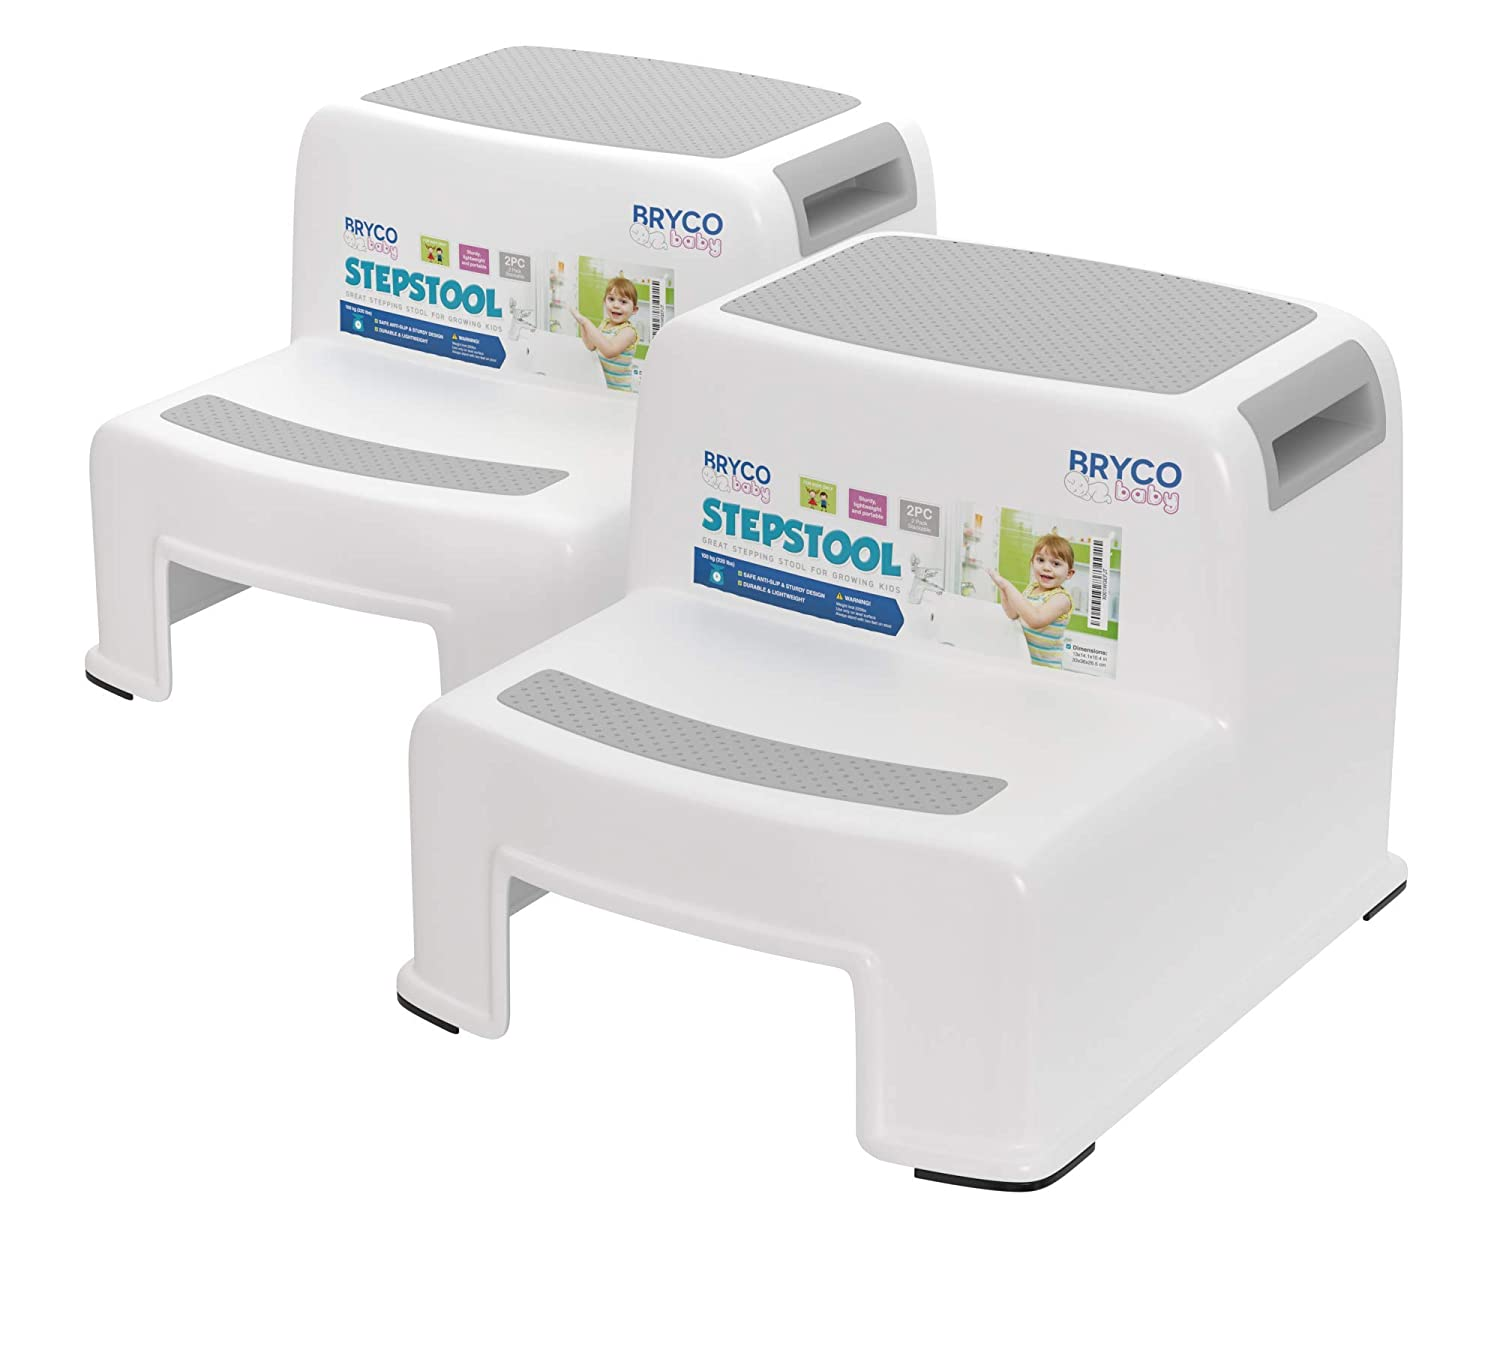 Bryco Baby Potty Training Step Stool - Set of Two - Two Step Design - Portable - Great for Potty Training at Home or Away